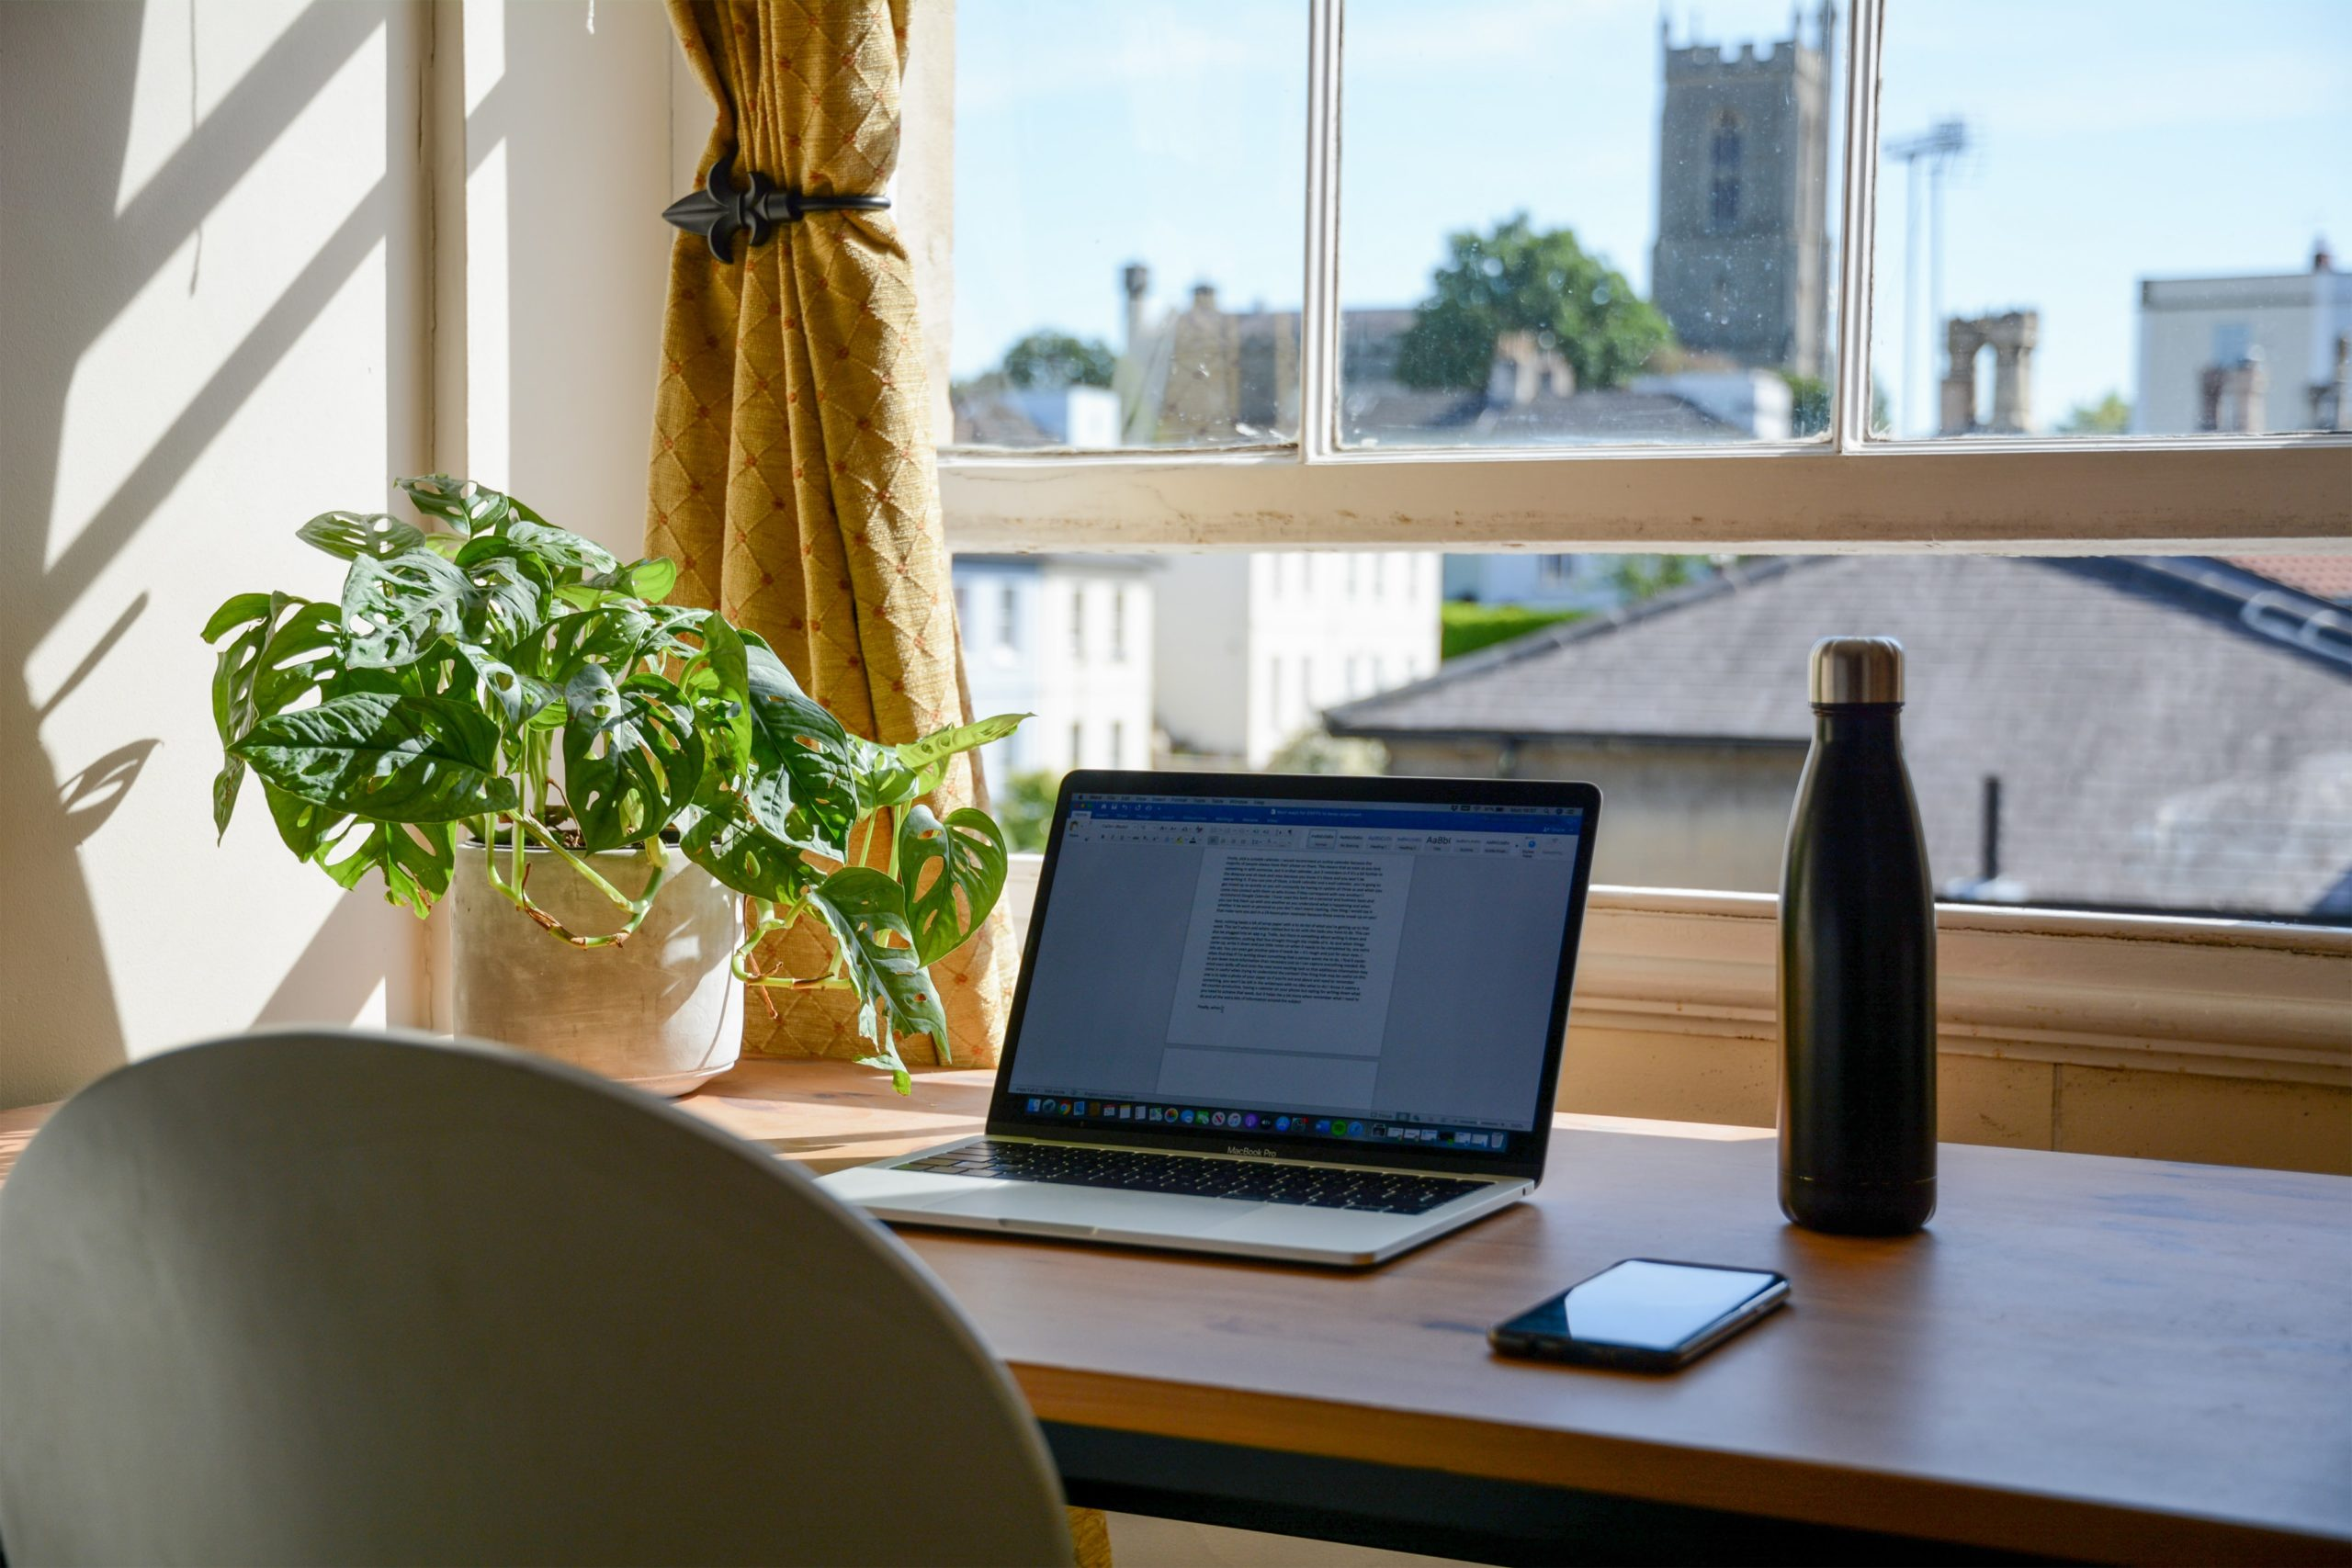 Desk setup with a plant, laptop, and a water bottle